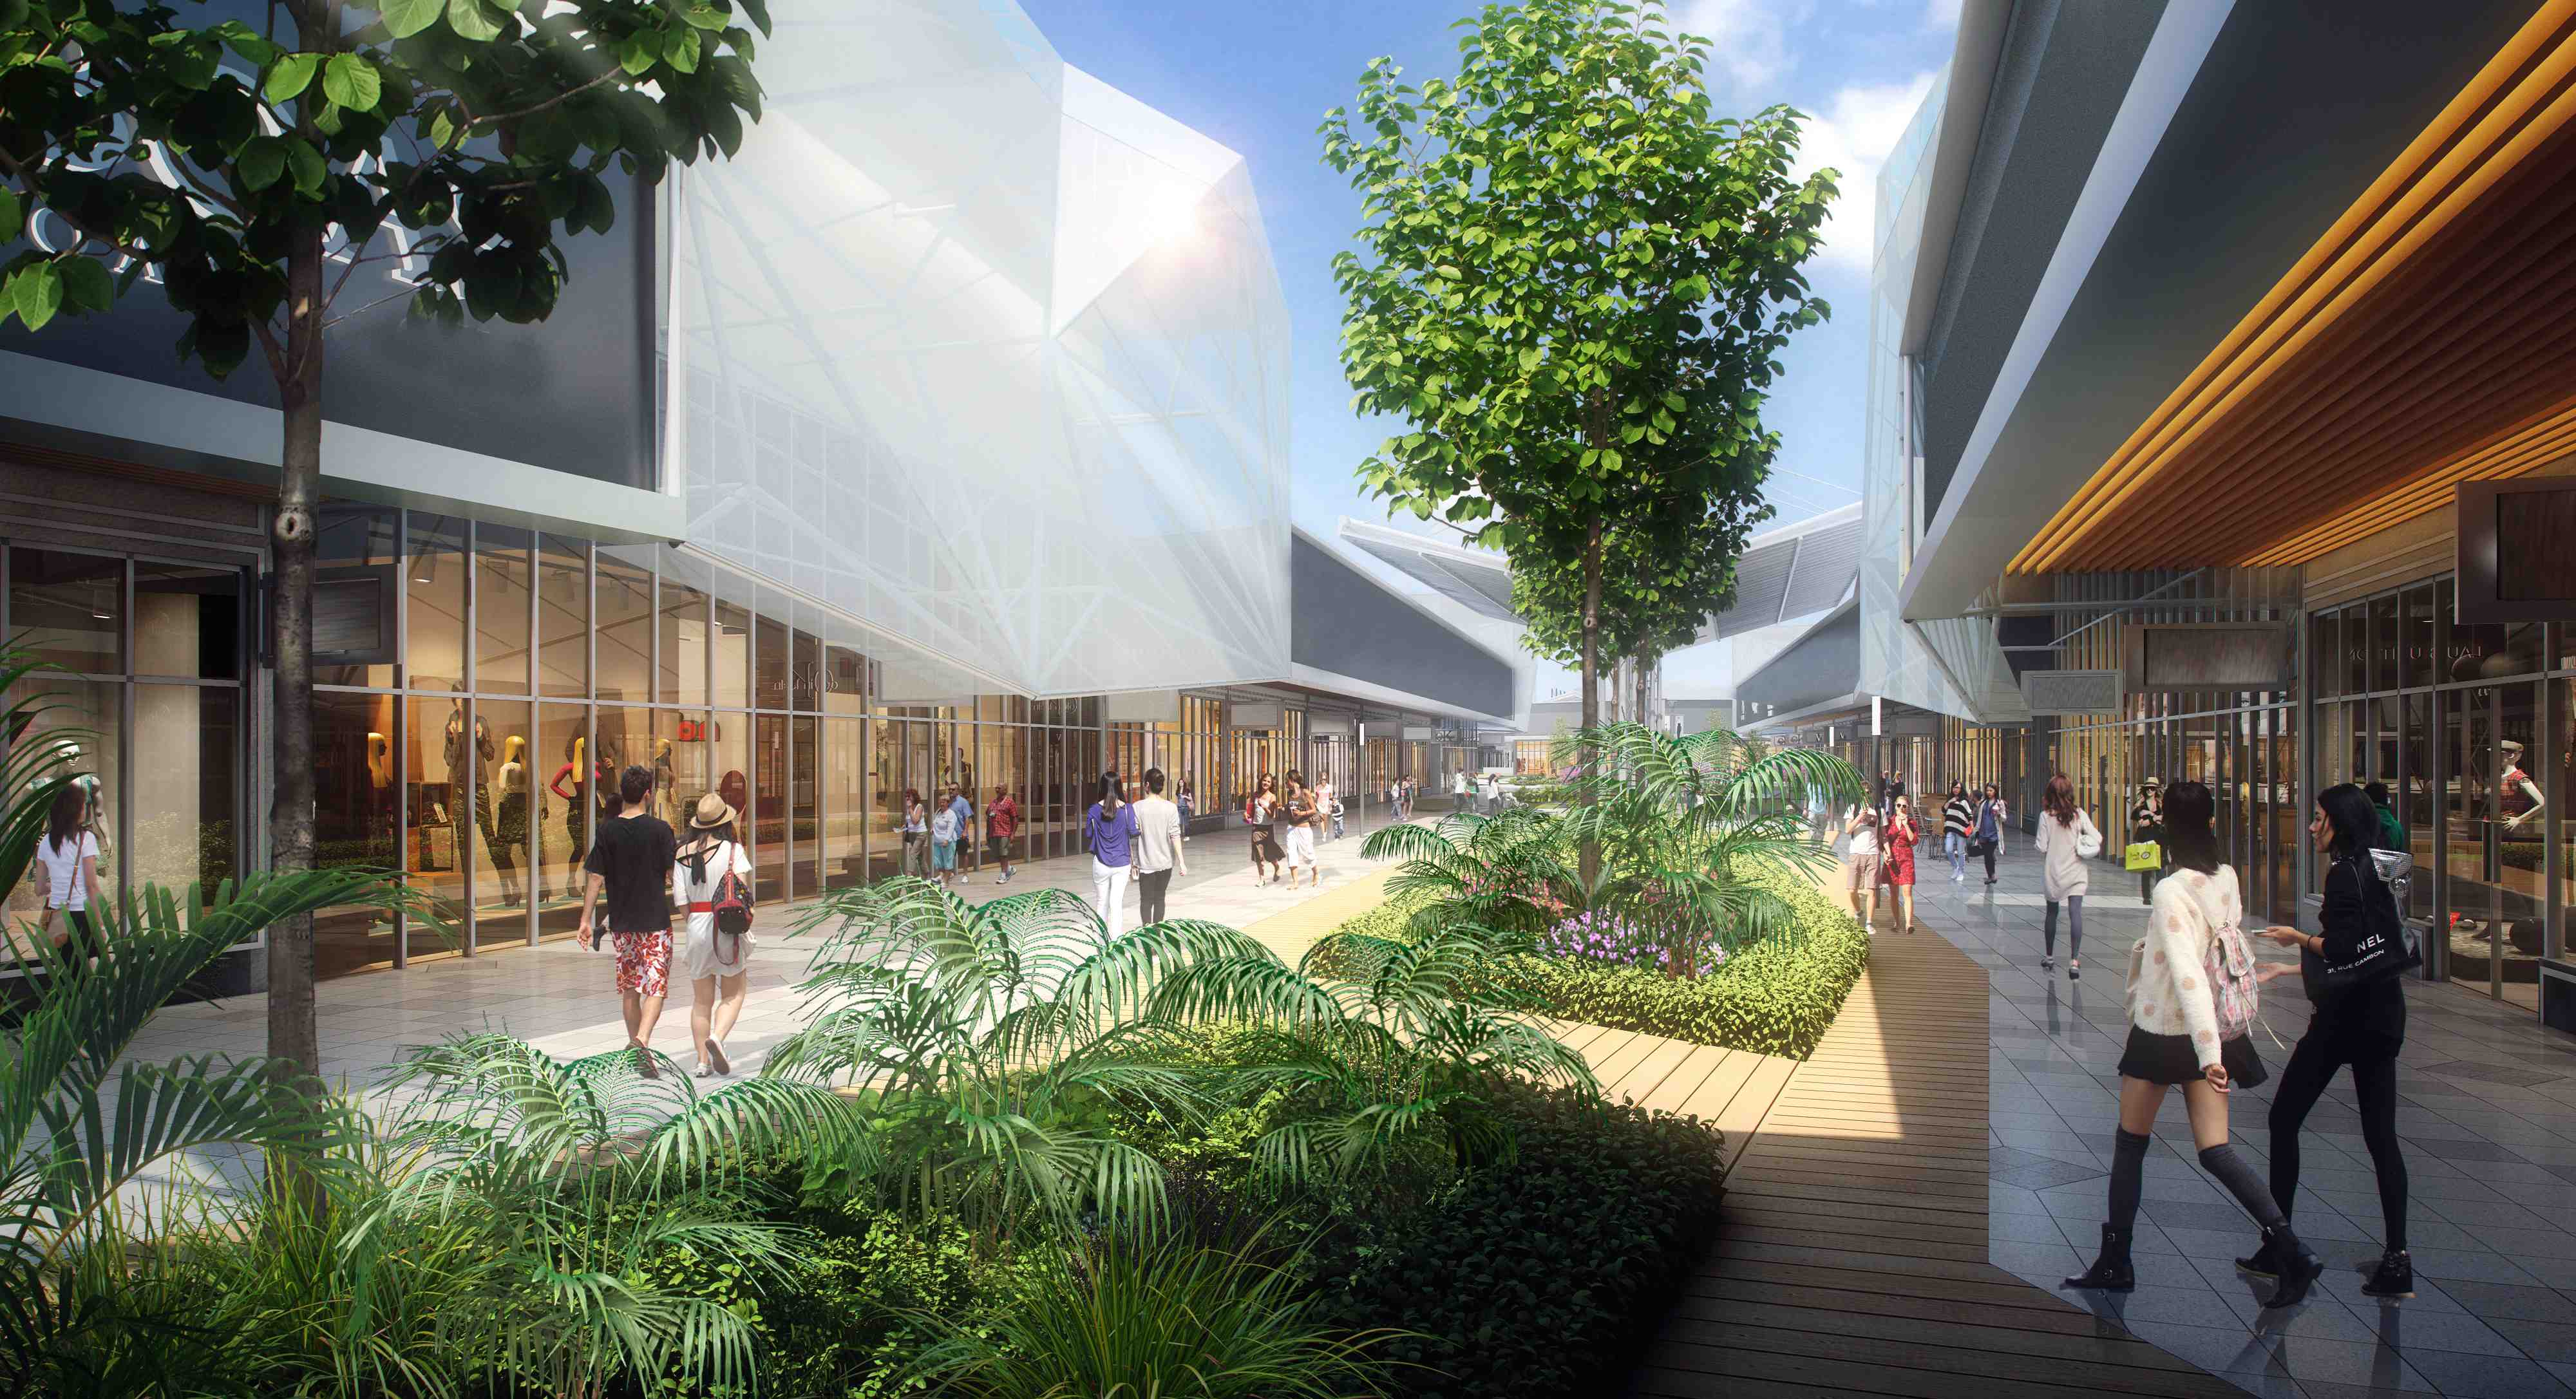 An artist's impression - a street view perspective of Design Village